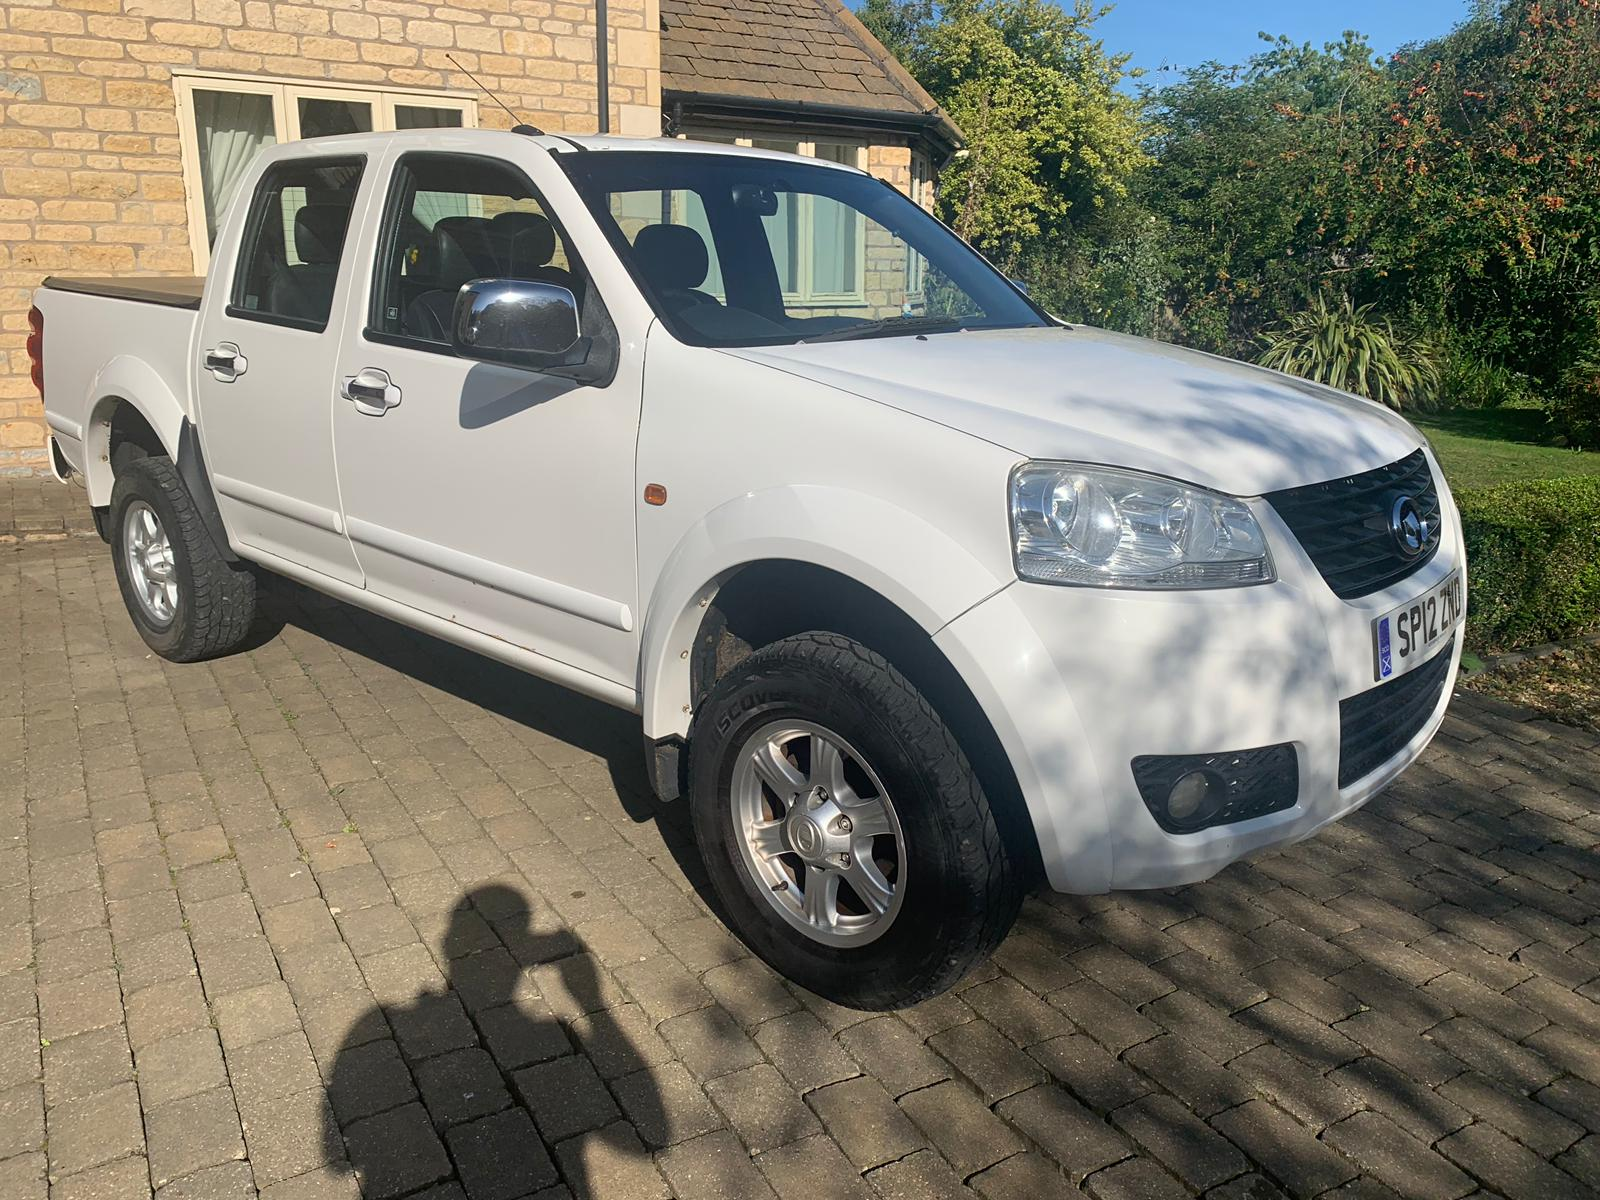 2012 Great Wall Steed Double Cab Pick up 2000cc Turbo Diesel manual